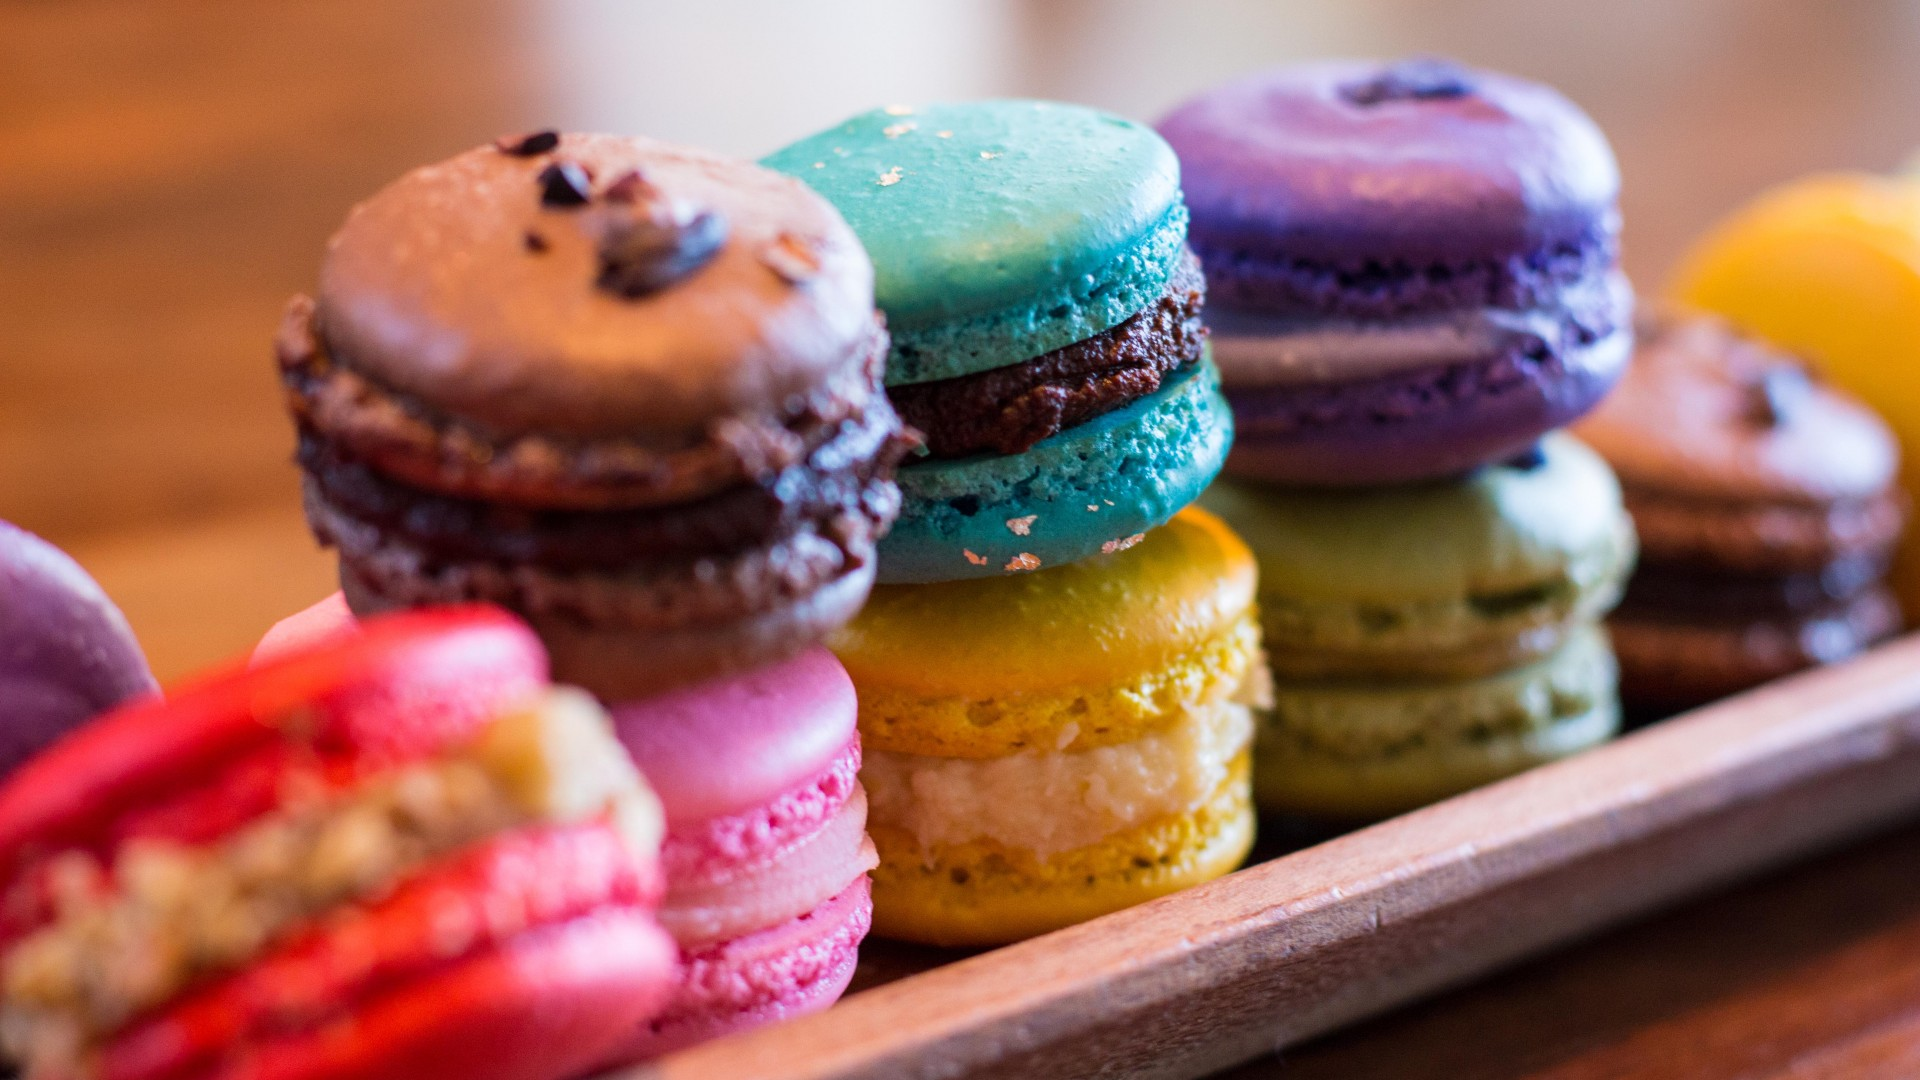 macaroon, French pastries, cookies, colorful (horizontal)